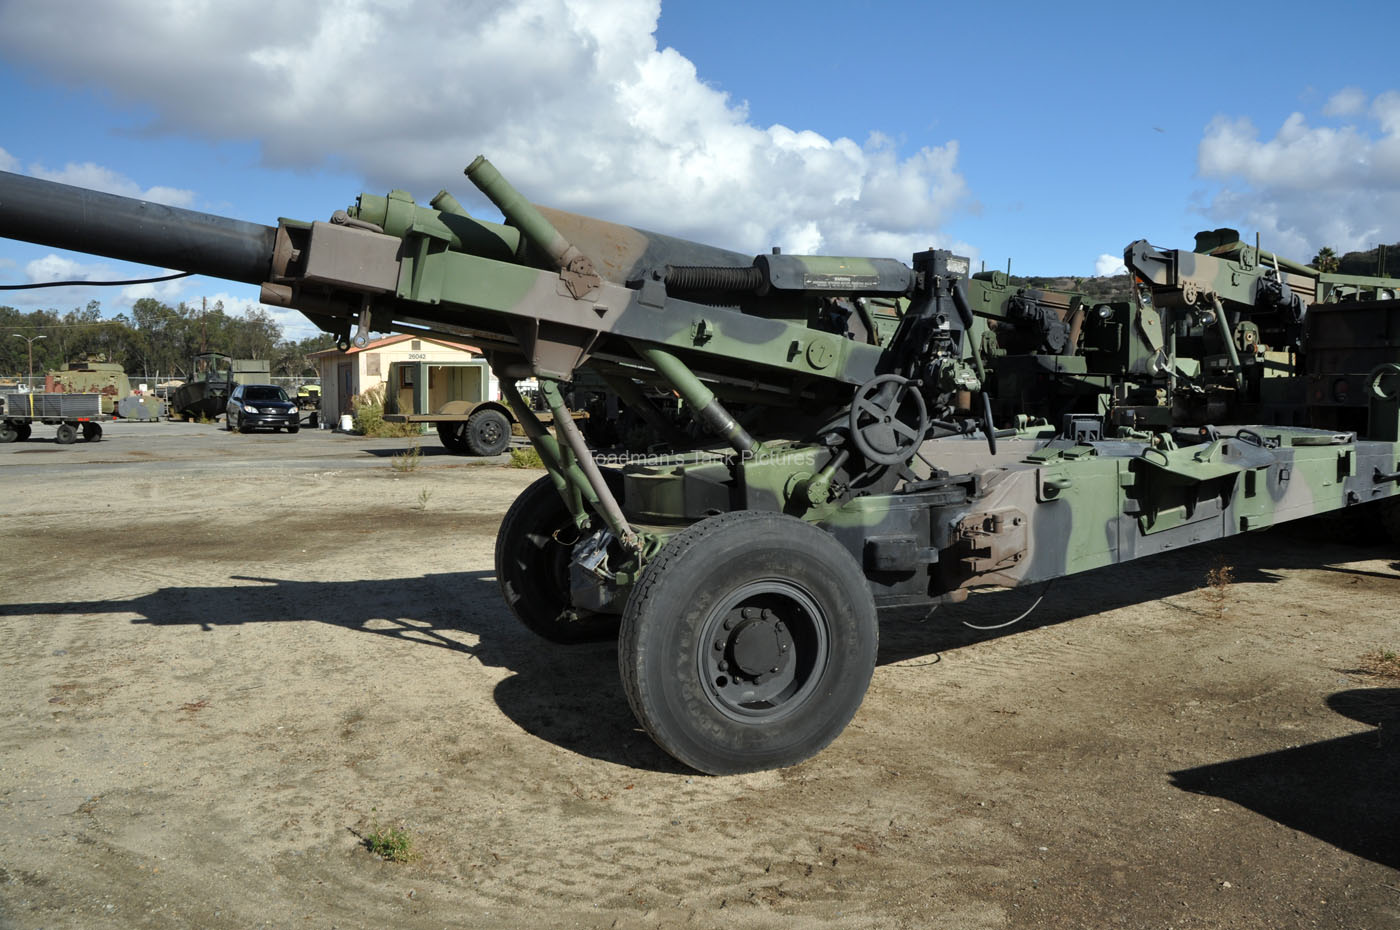 TOADMAN'S TANK PICTURES 155MM HOWITZER M198